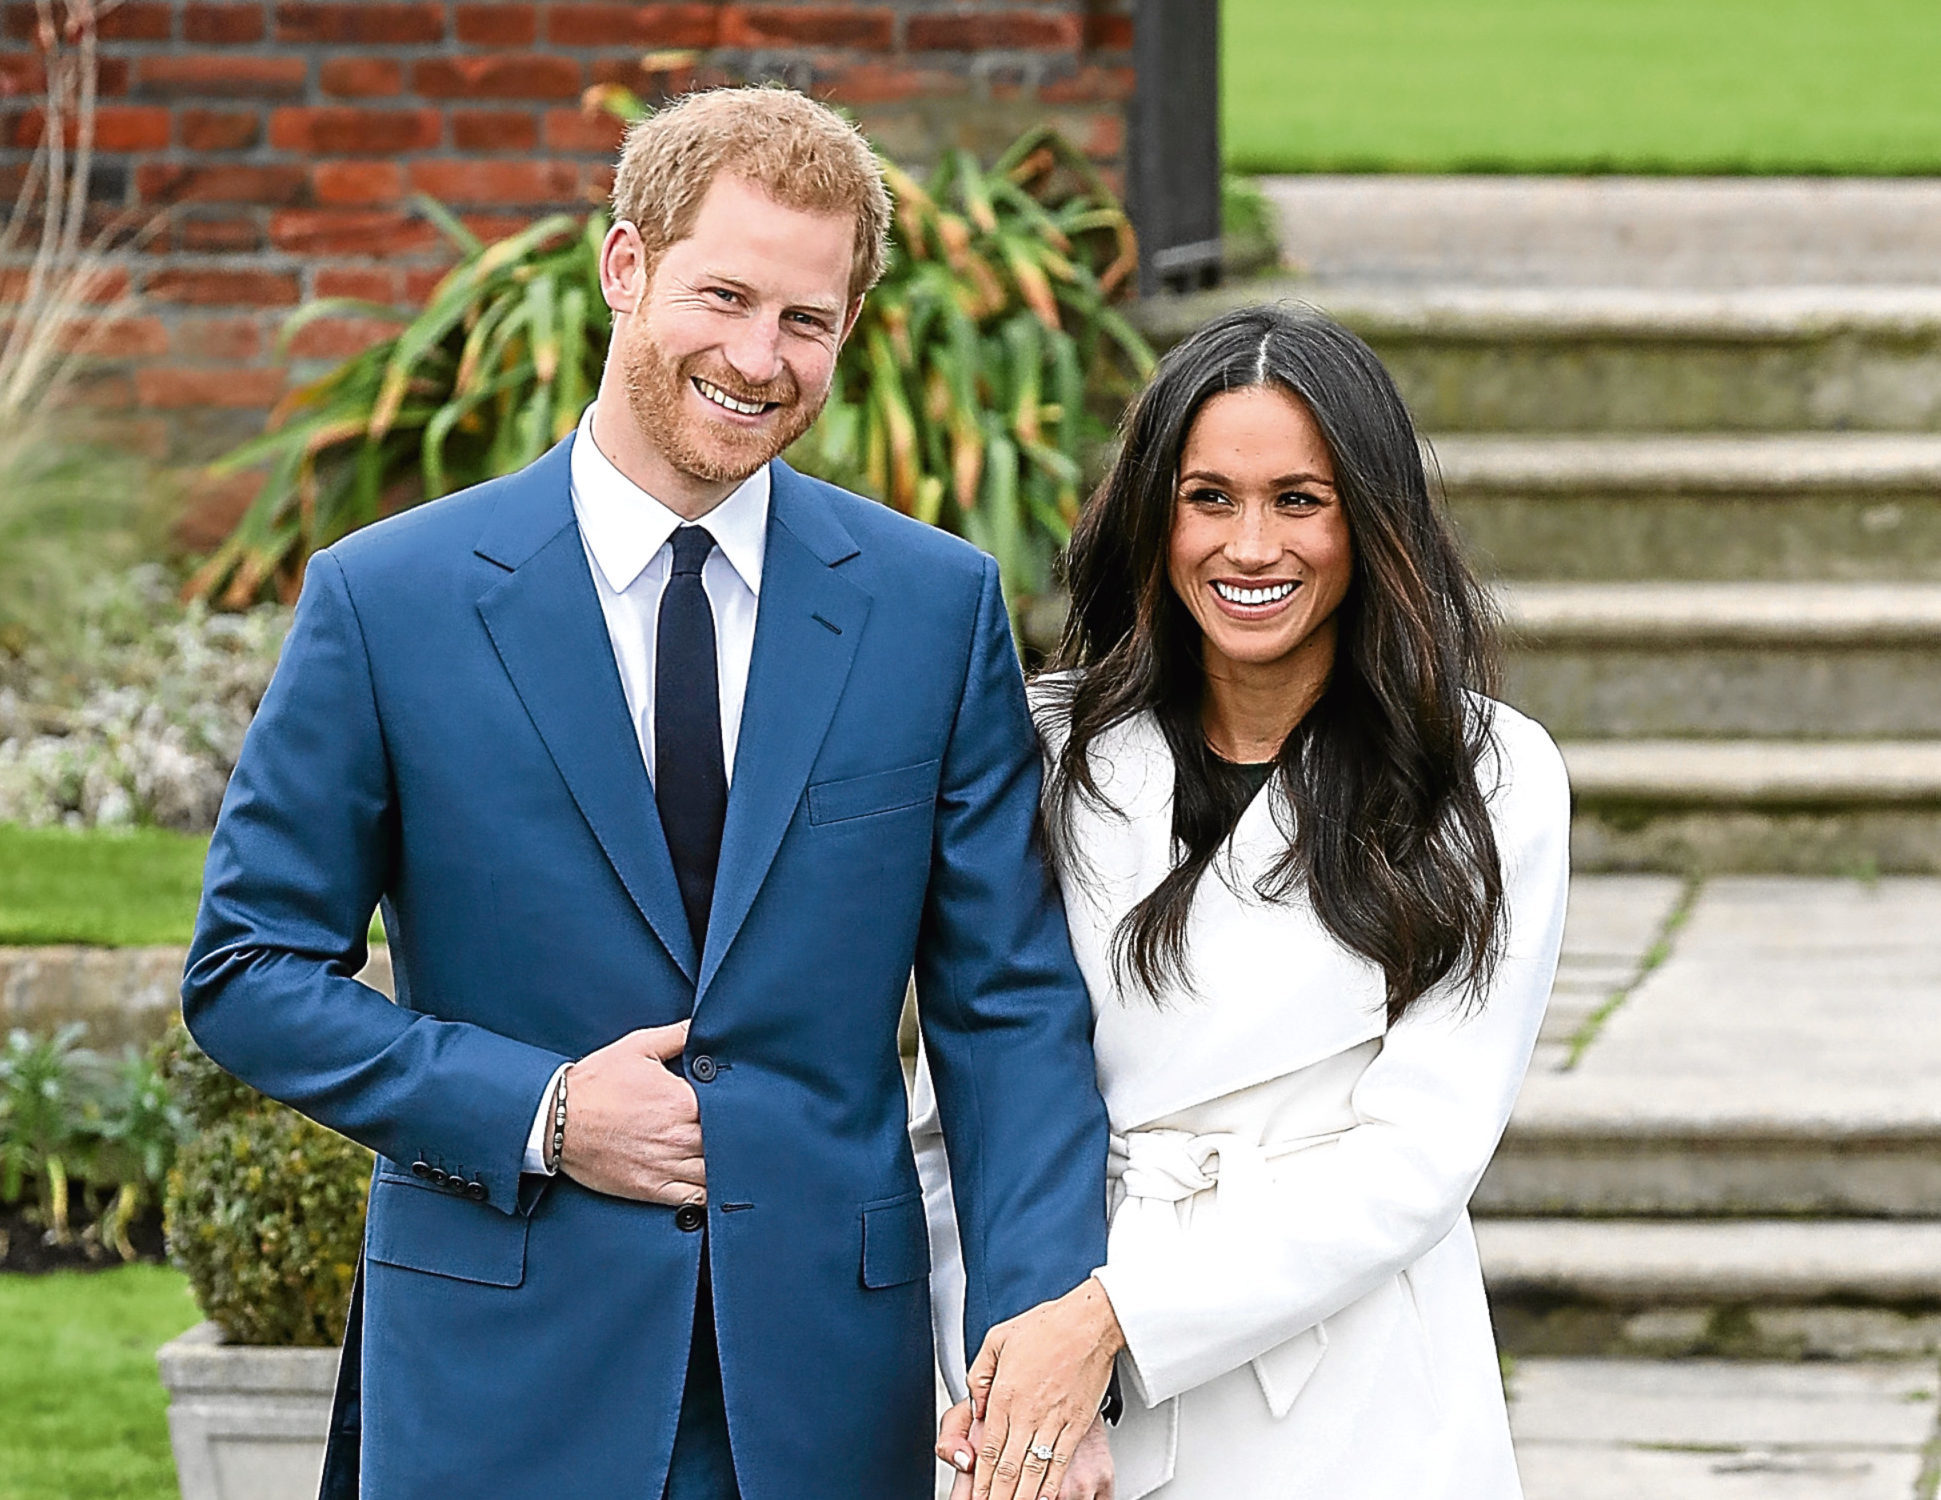 Prince Harry and actress Meghan Markle (Getty Images)